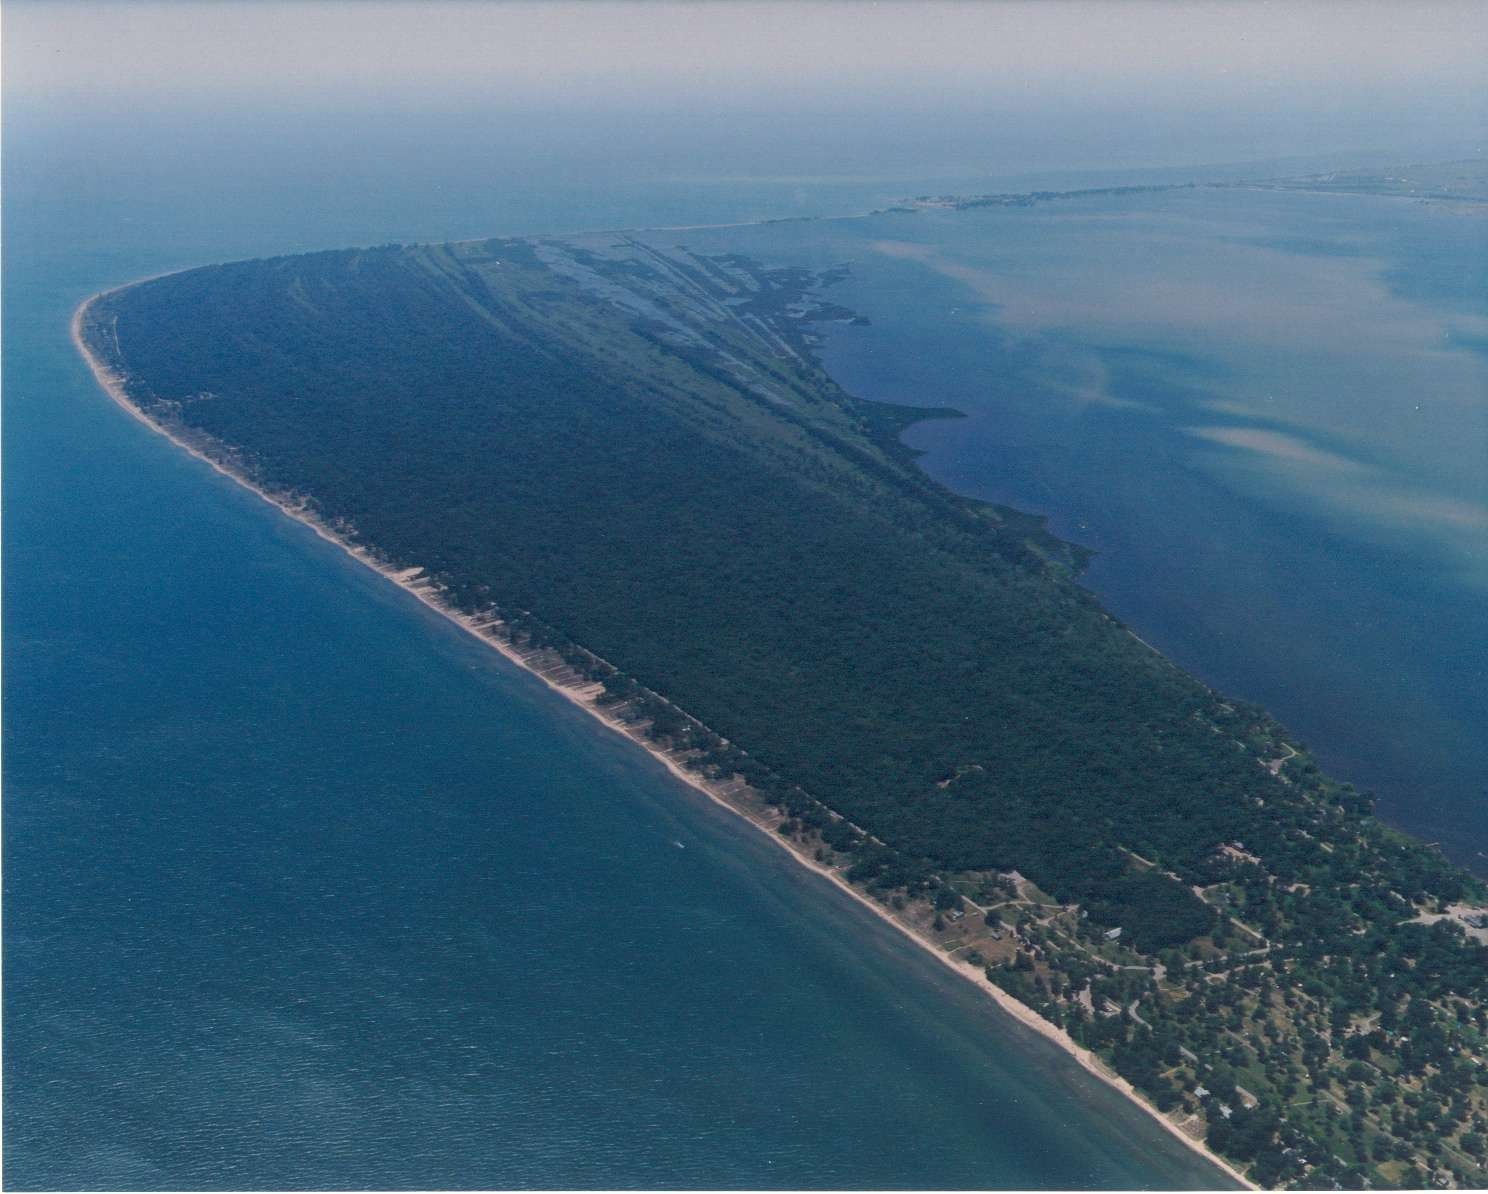 Aerial view of Rondeau Provincial Park in the ChathamKent